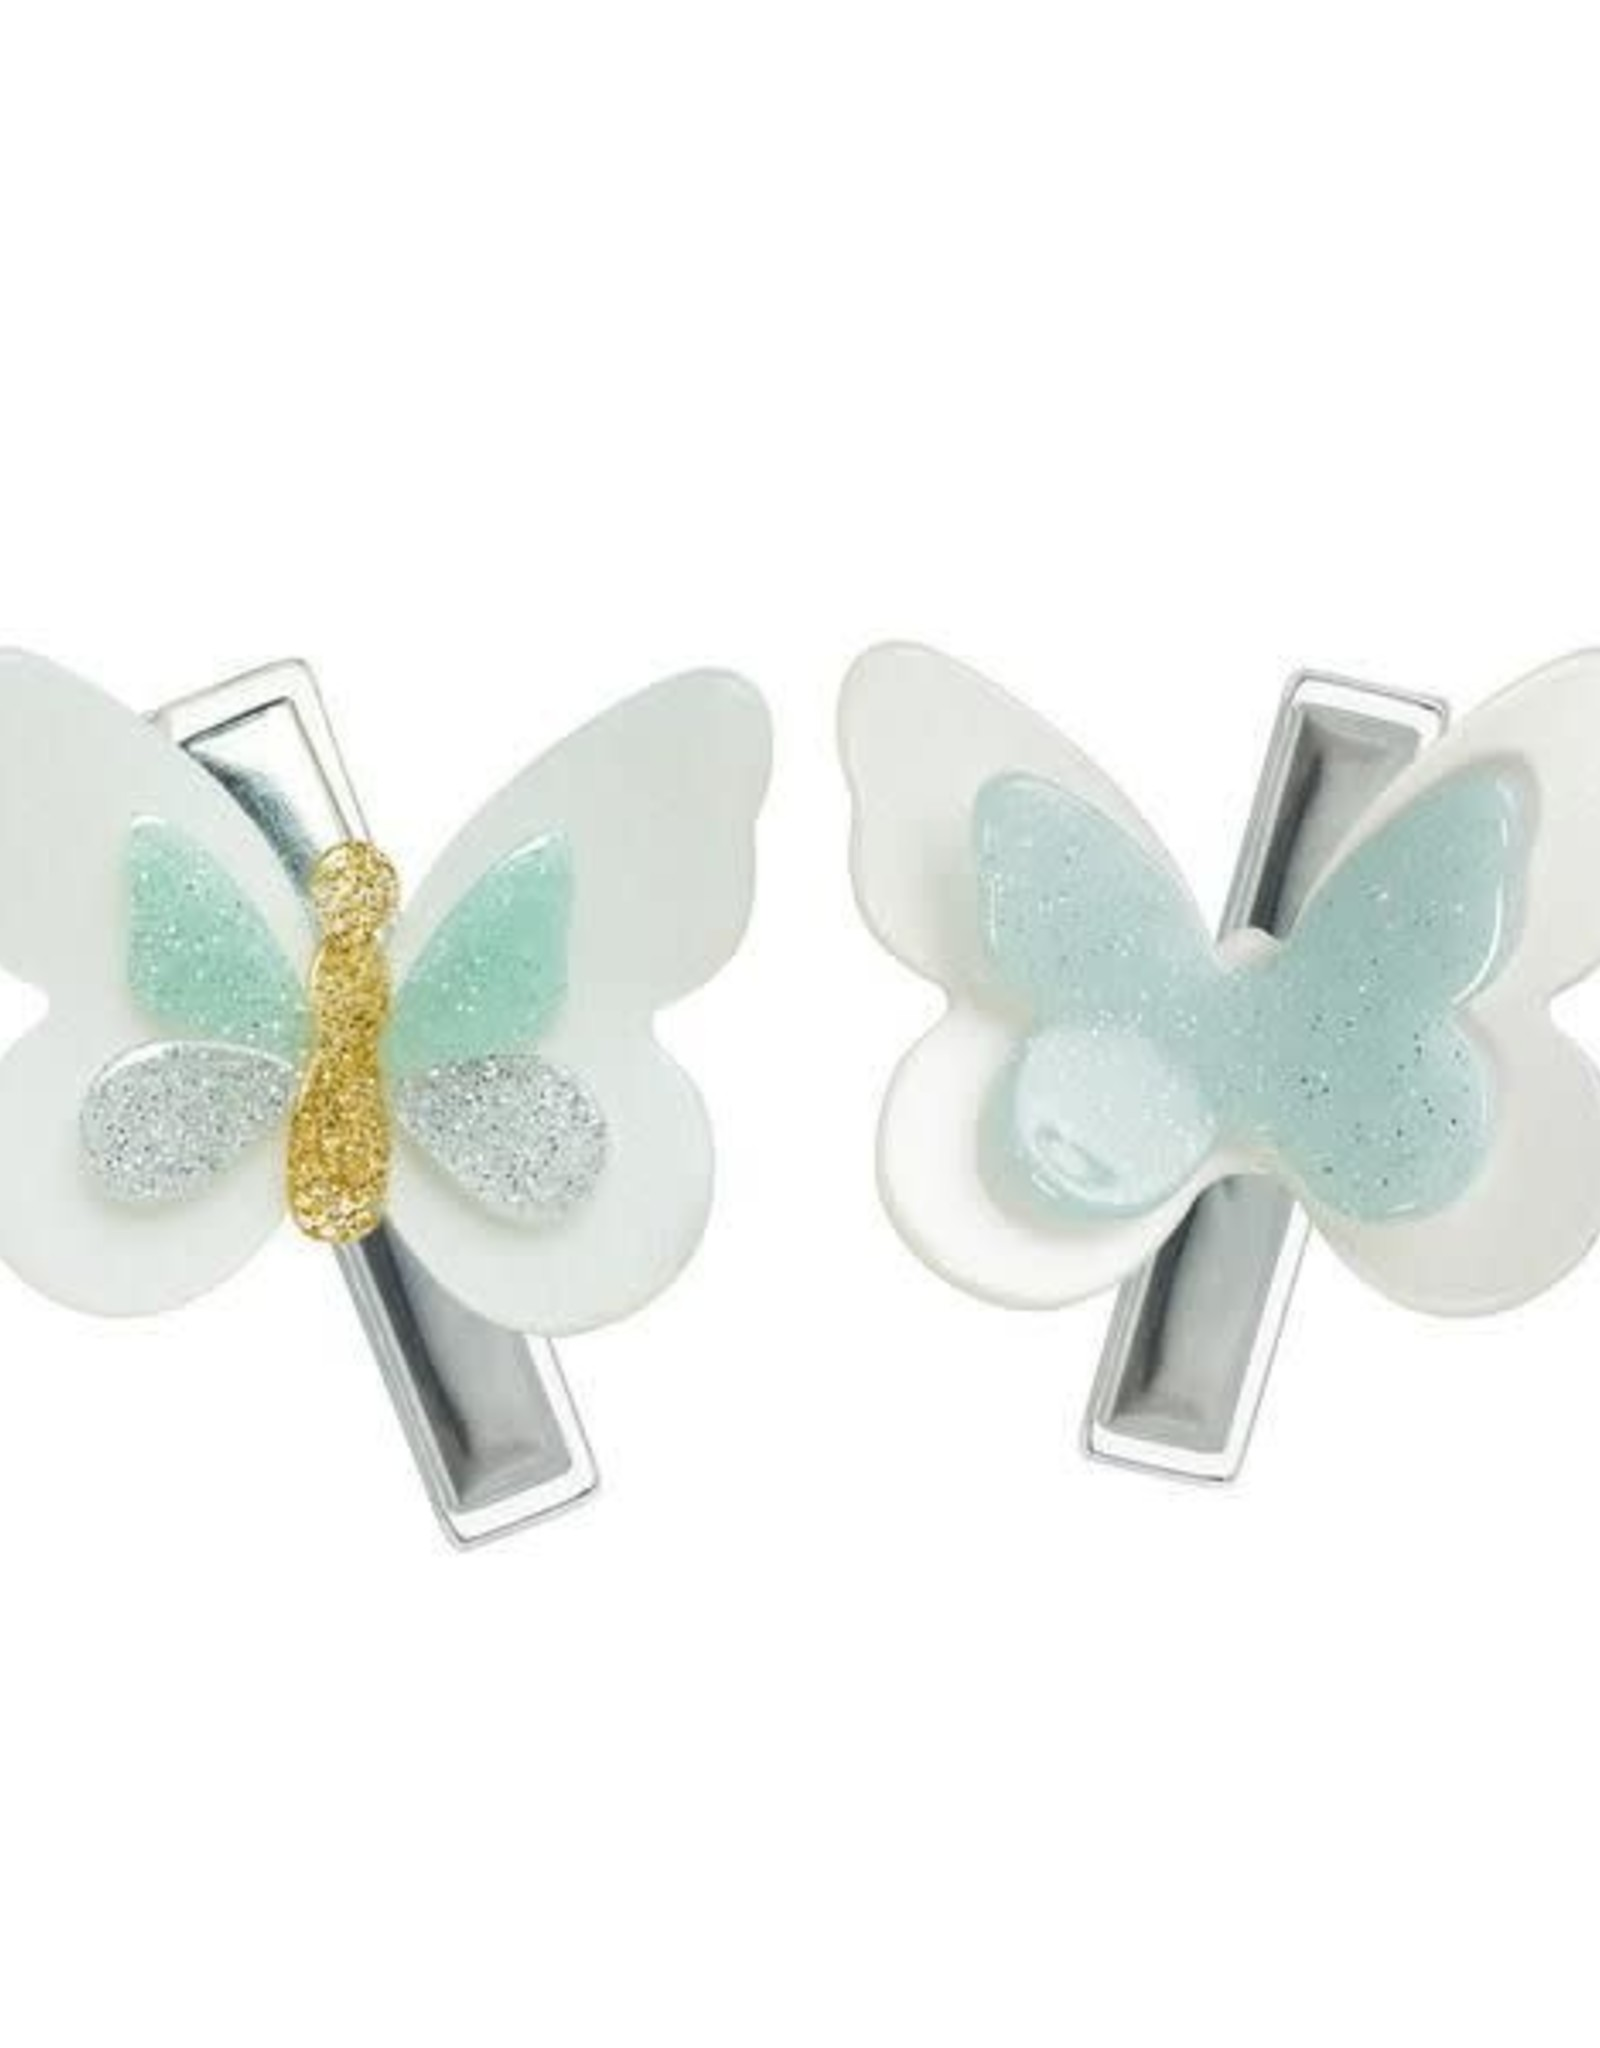 Lilies & Roses butterfly hairclips- mint